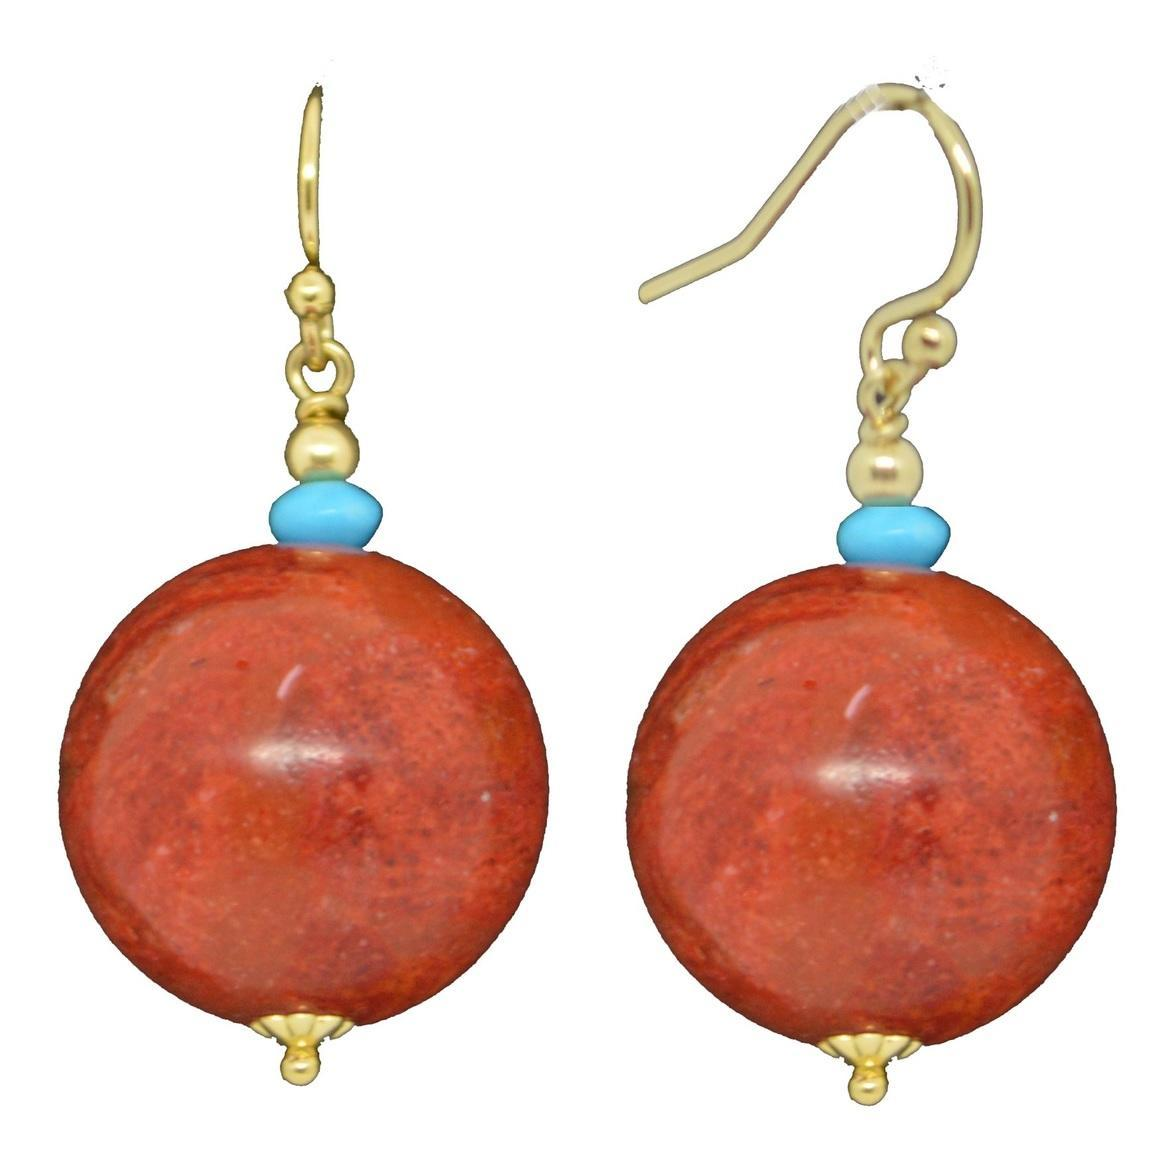 14k Gold filled with Sponge Coral and Turquoise Howlite Earrings | Trada Marketplace